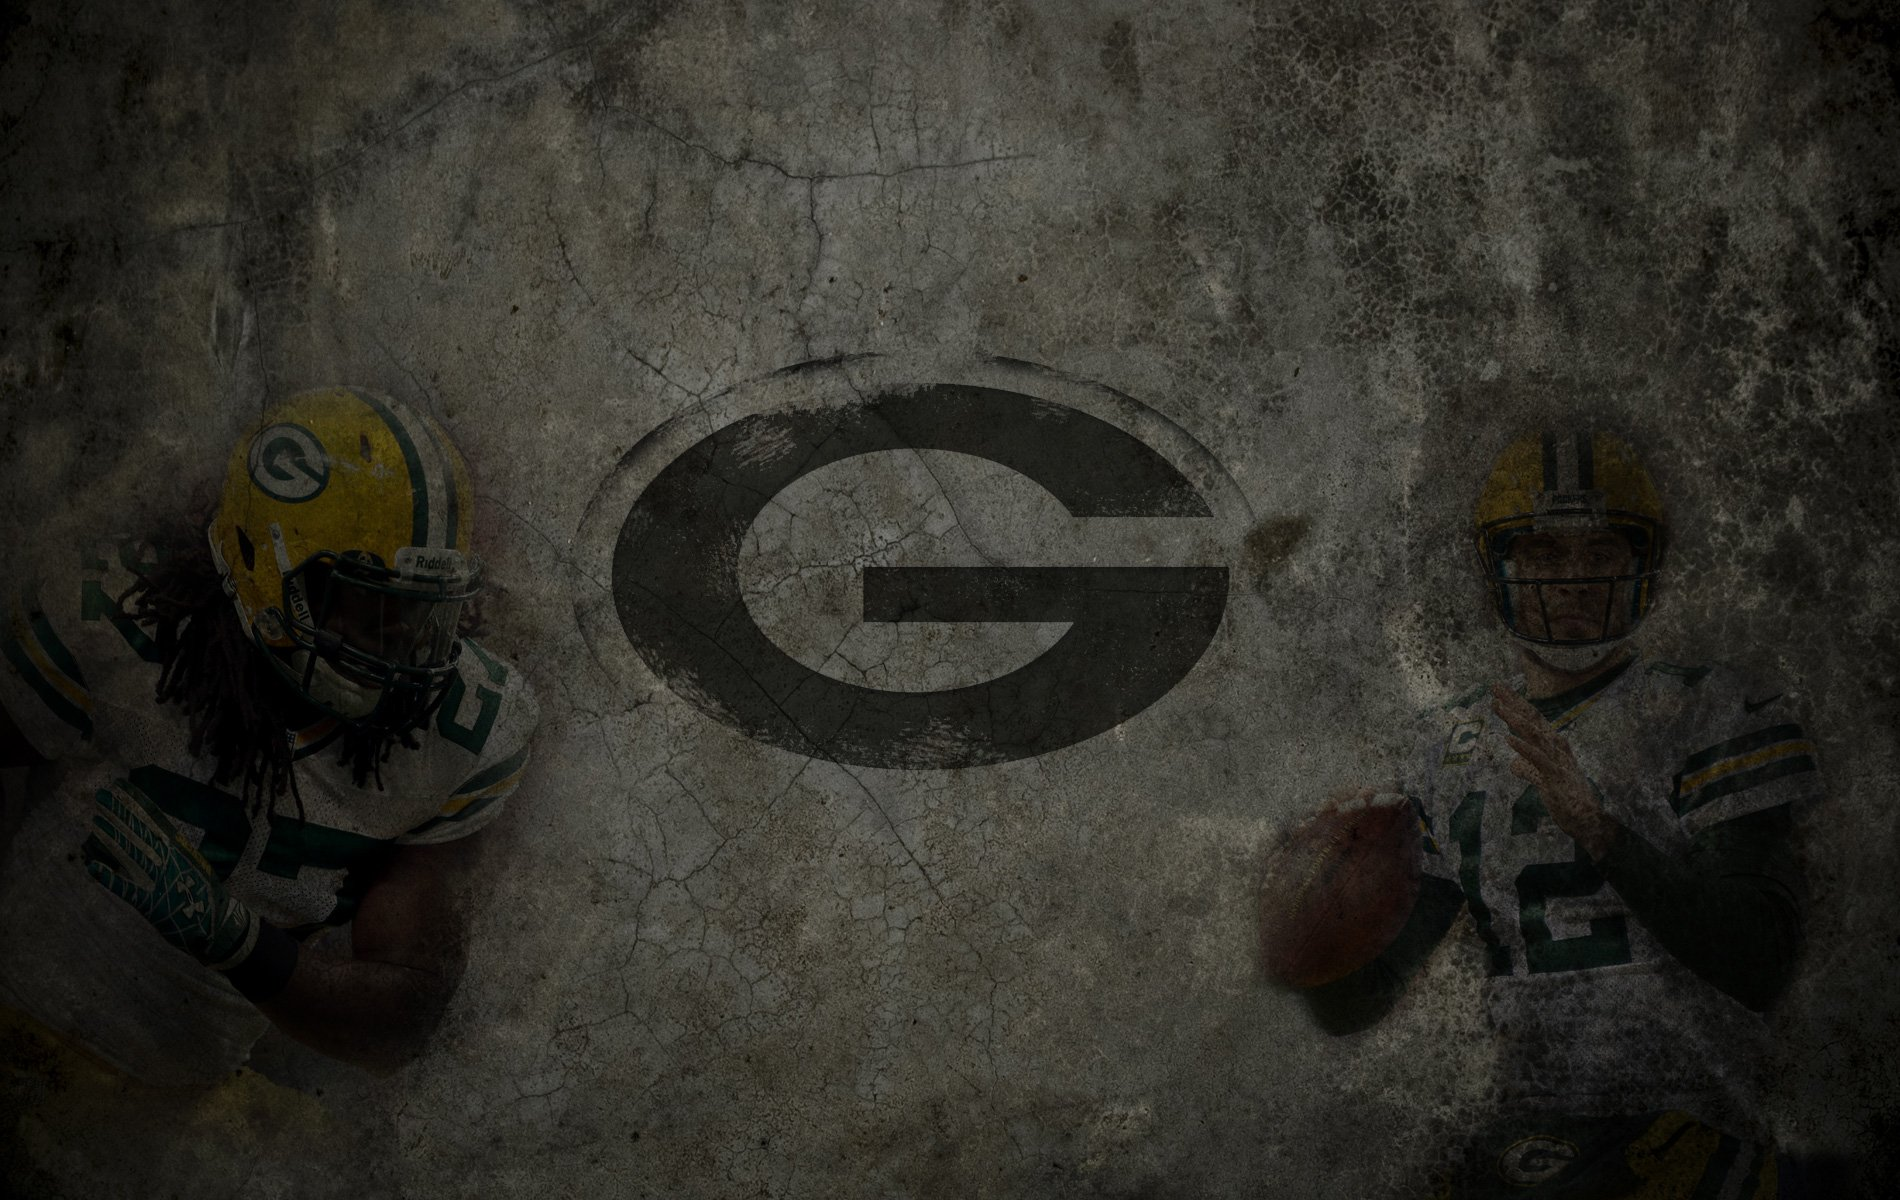 Green Bay Packers images Sick Packers Wallpaper HD 1900x1200